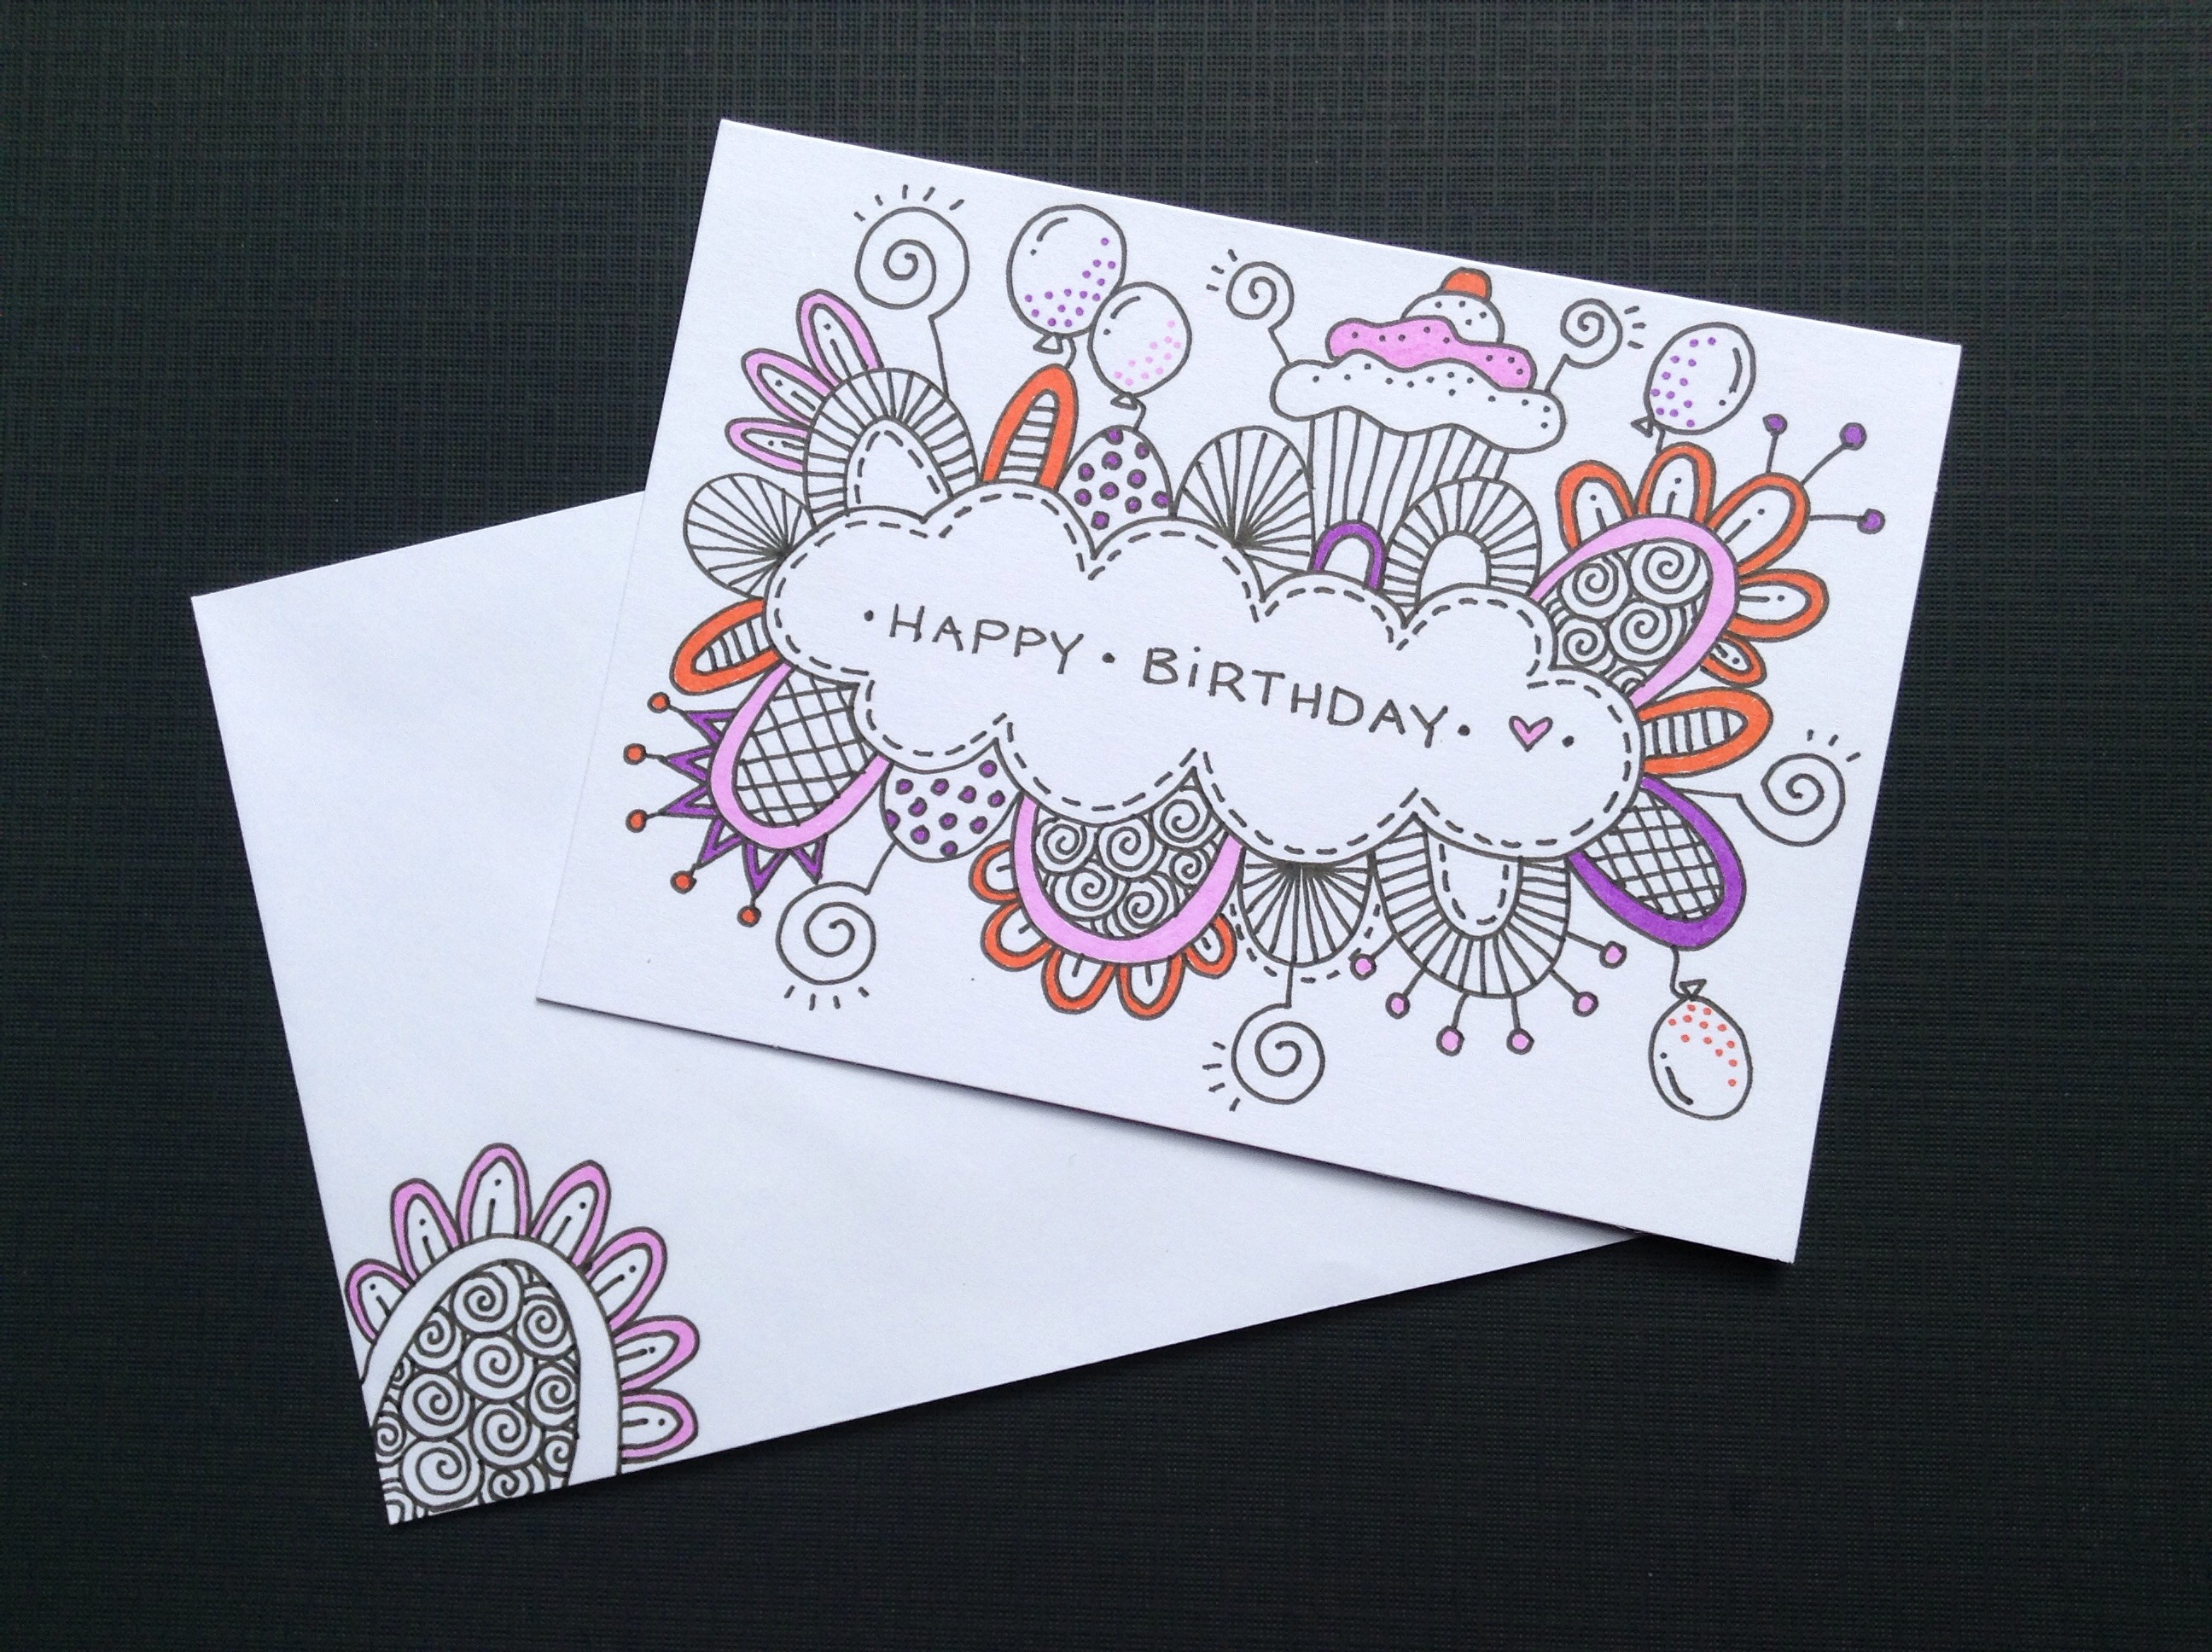 birthday card design drawing ; birthday-card-drawing-ideas-25-best-ideas-about-hand-drawn-cards-on-pinterest-love-cards